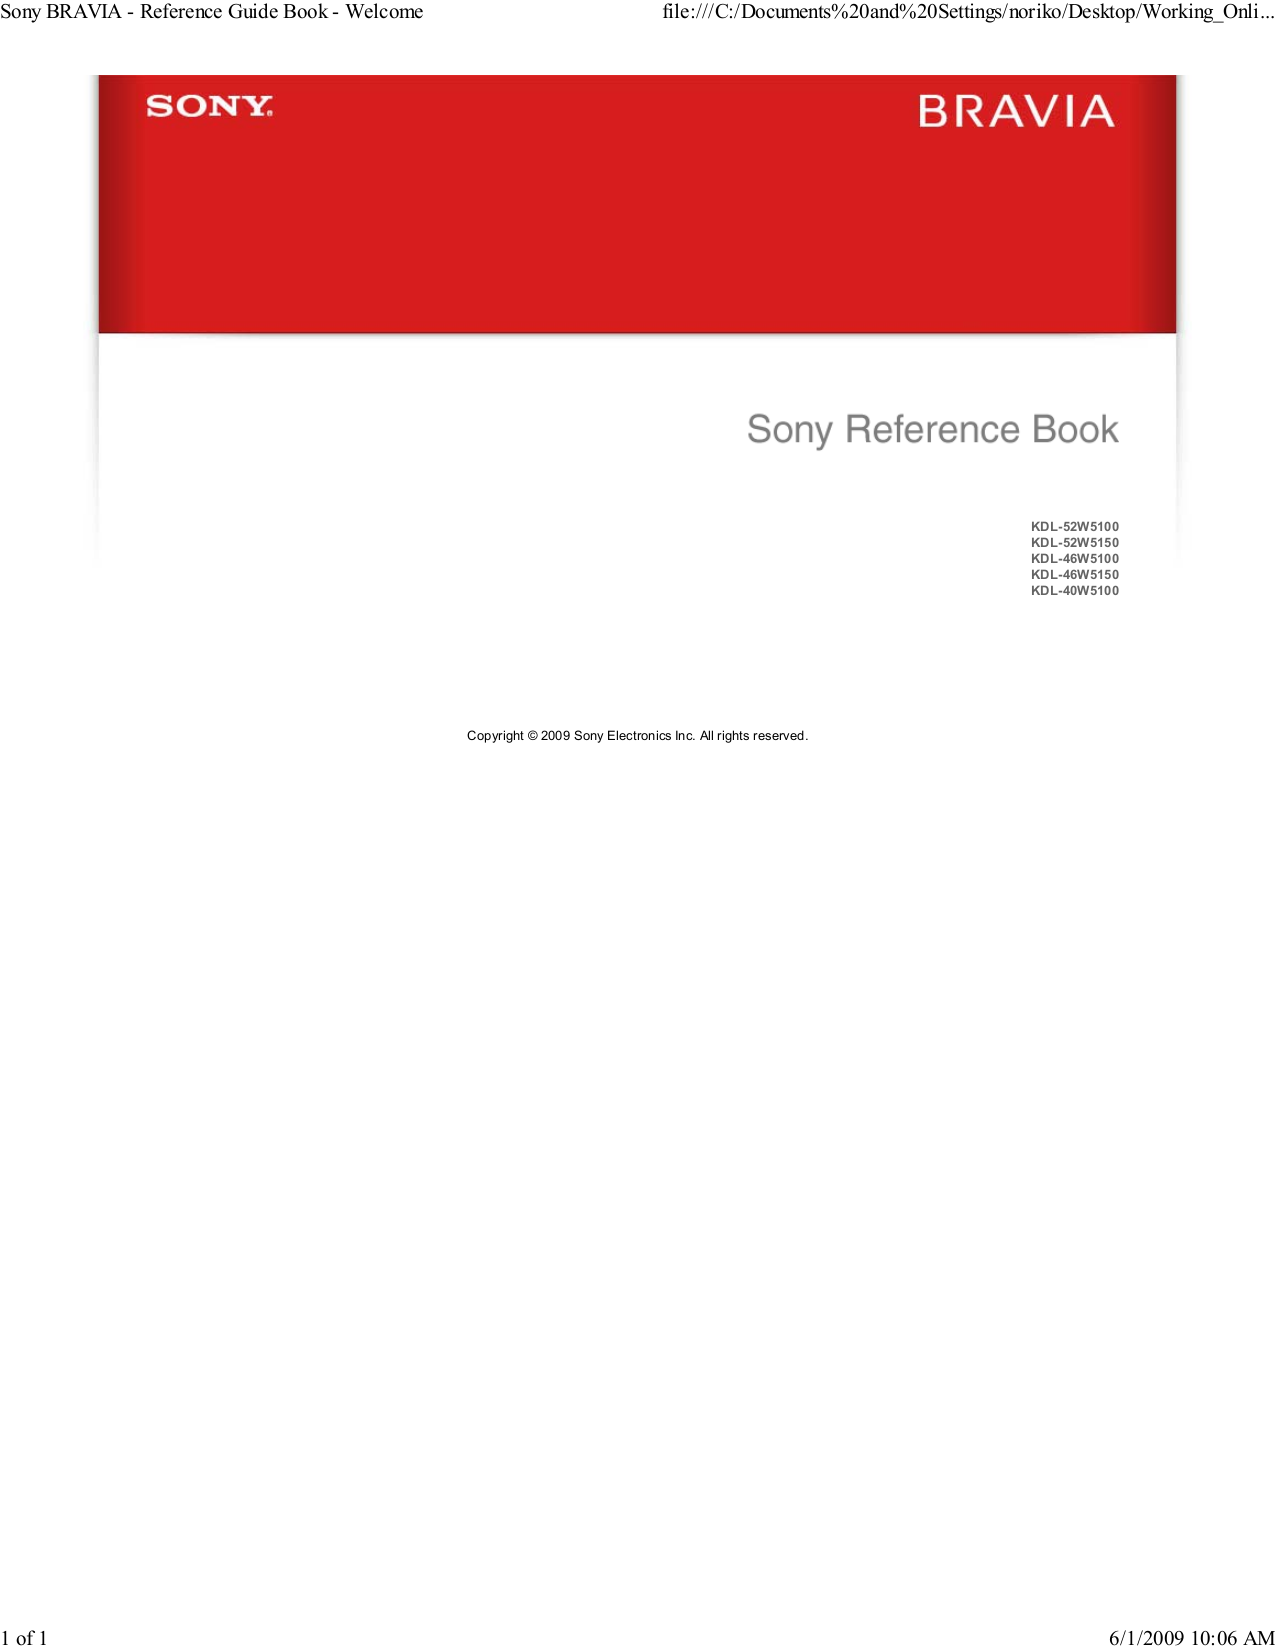 Sony tv manuals free pdf for sony tv bravia kdl 40w5100 manual fandeluxe Image collections